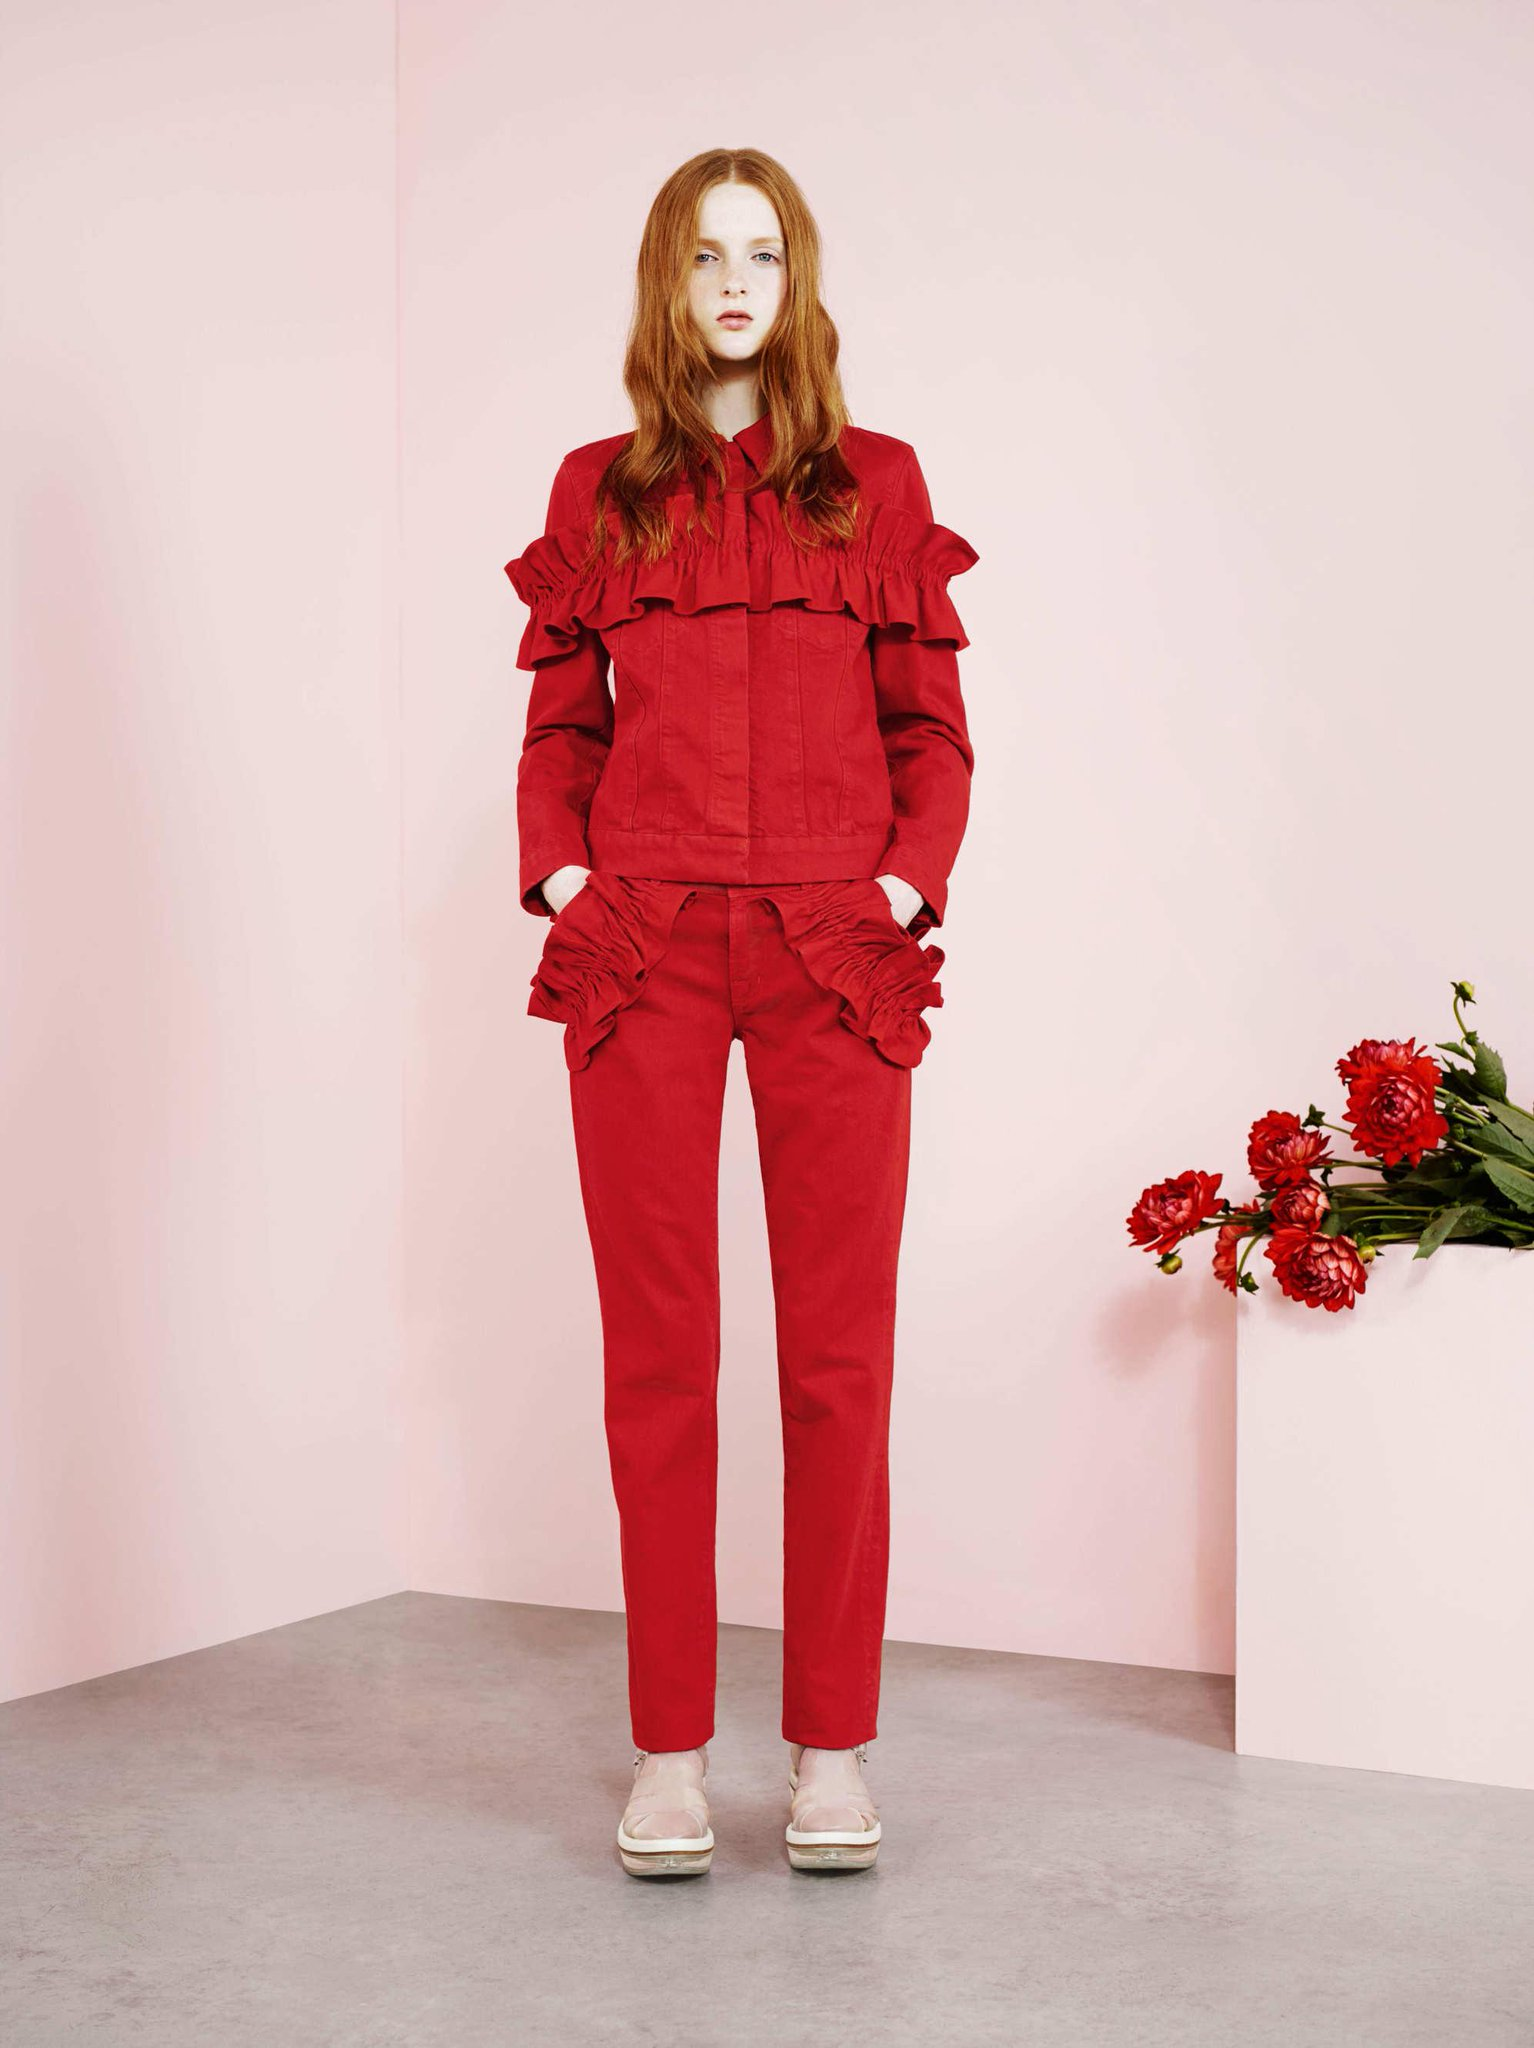 Here's your first look at the Simone Rocha for J Brand collaboration: http://t.co/f4Lyx0M3Ih http://t.co/s0z4fJYGy0